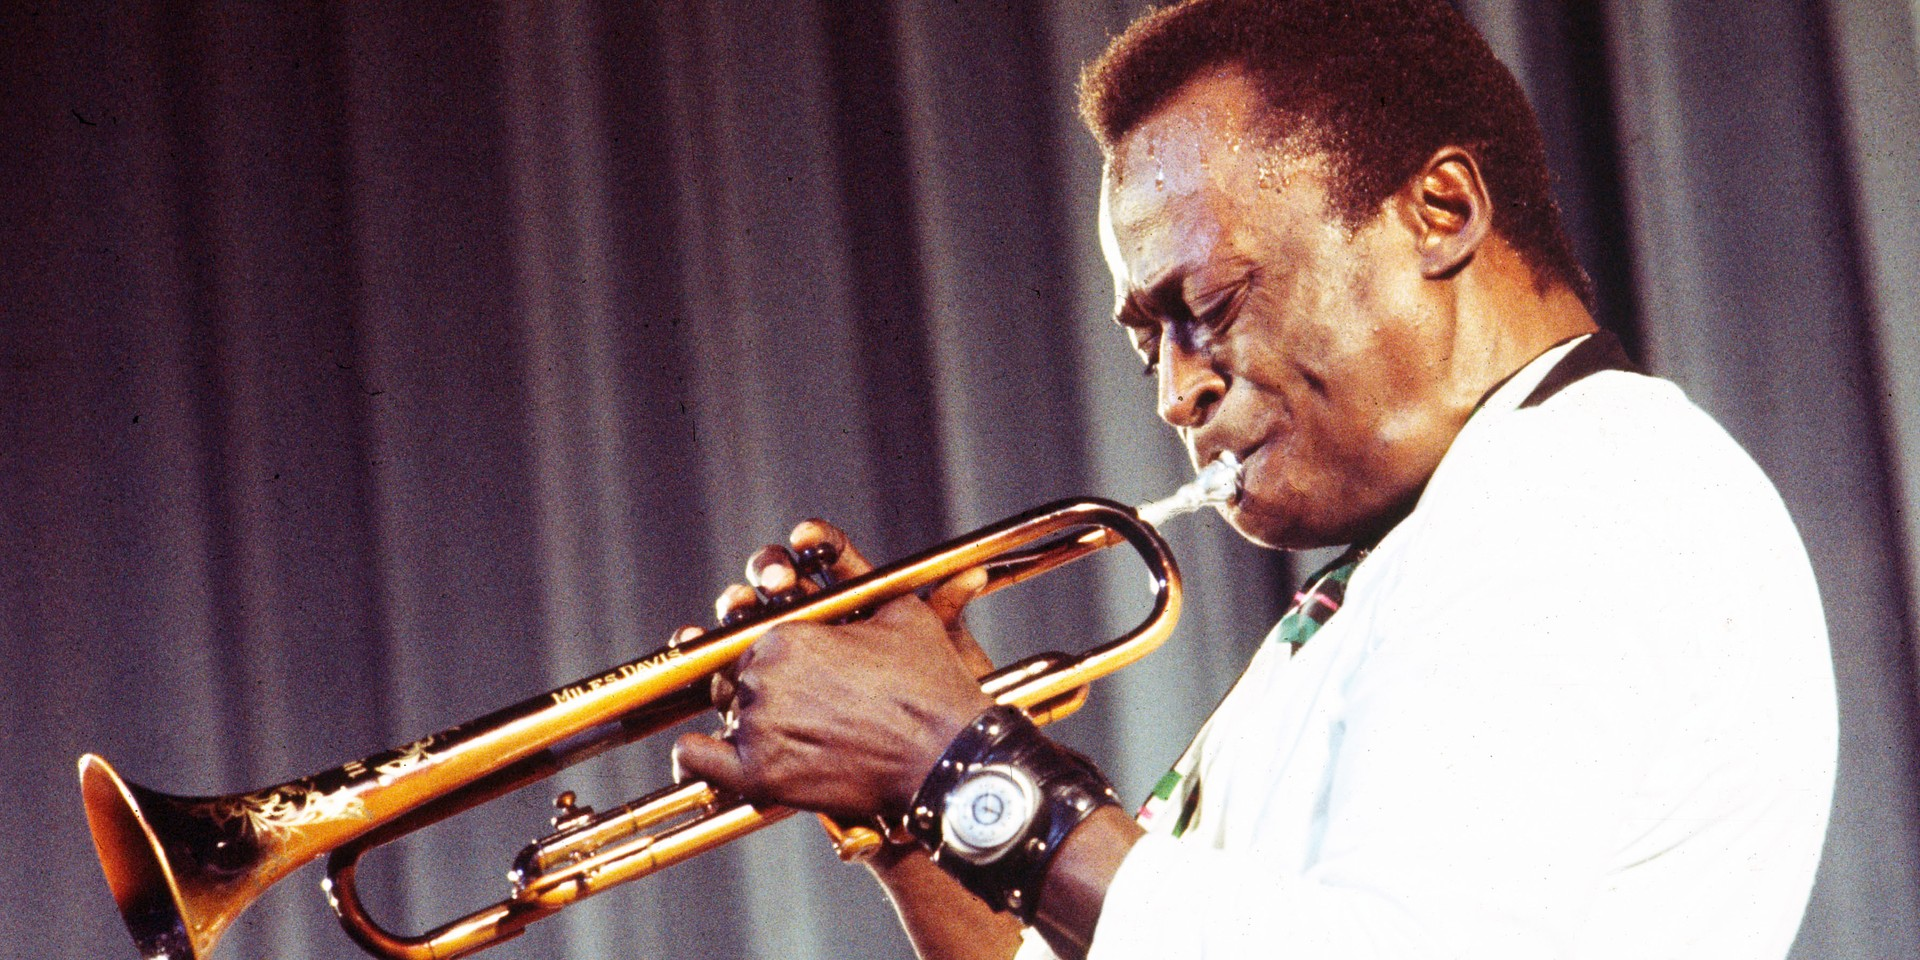 Miles Davis' unreleased album from 1985, Rubberband, to be released later this year in September